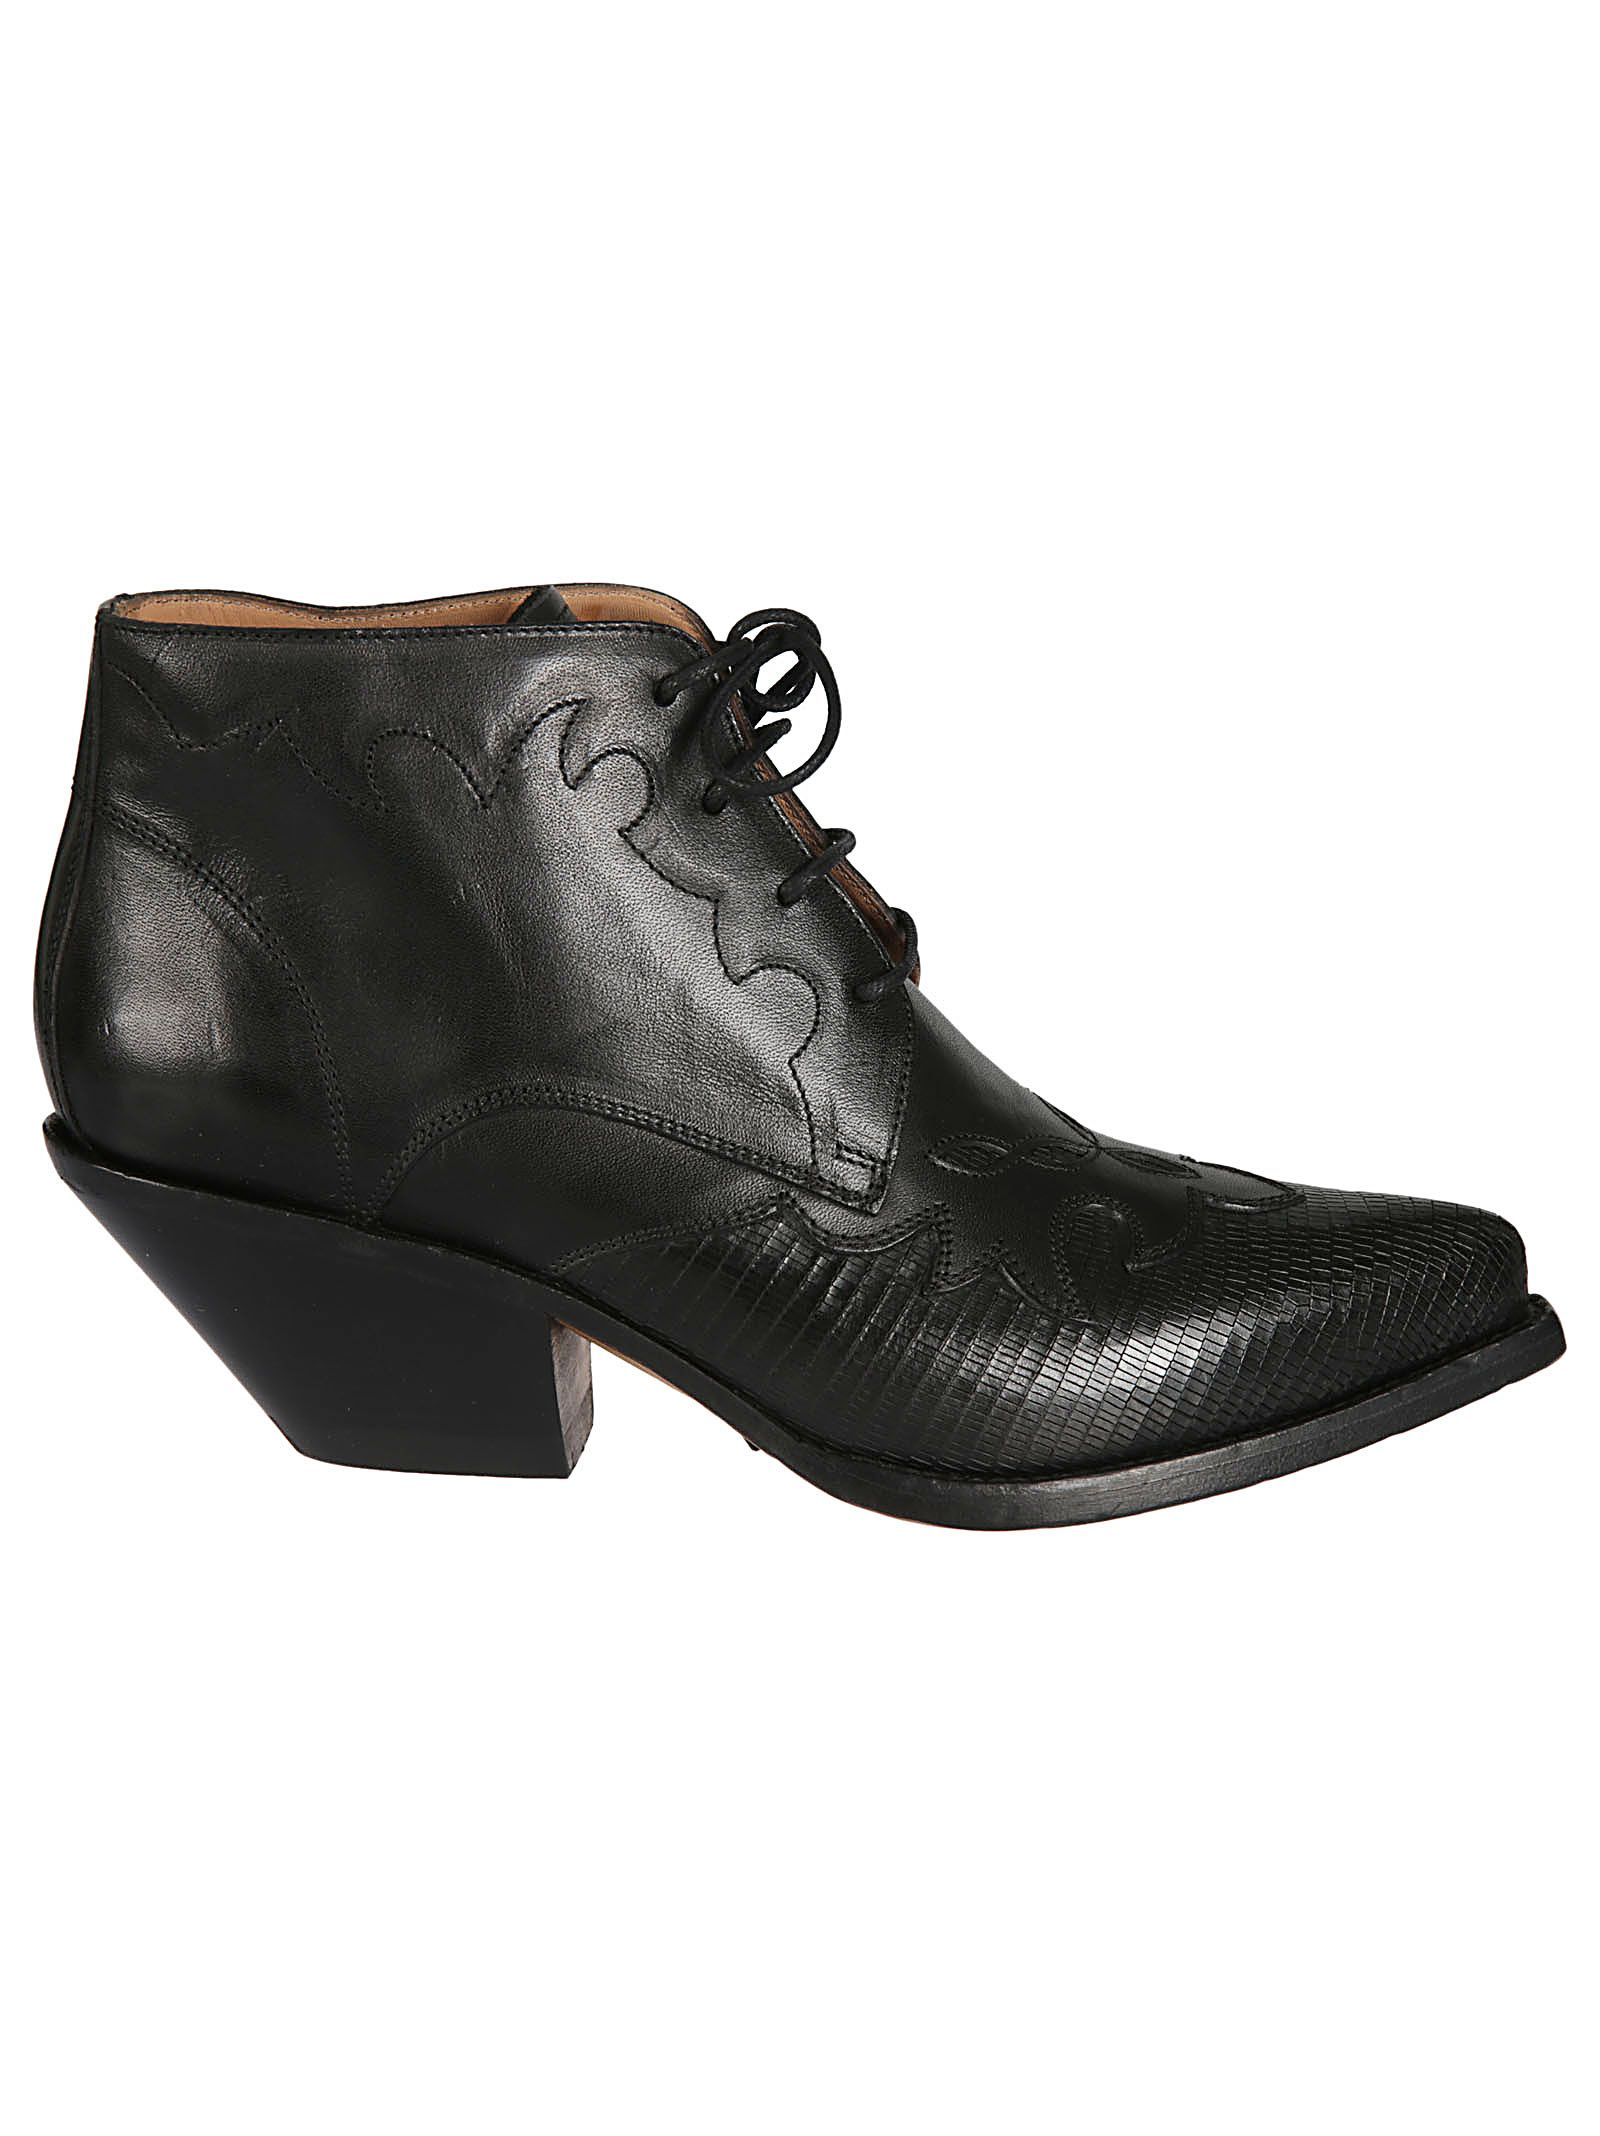 Buttero WOMEN'S B8109VARADC01 BLACK LEATHER ANKLE BOOTS